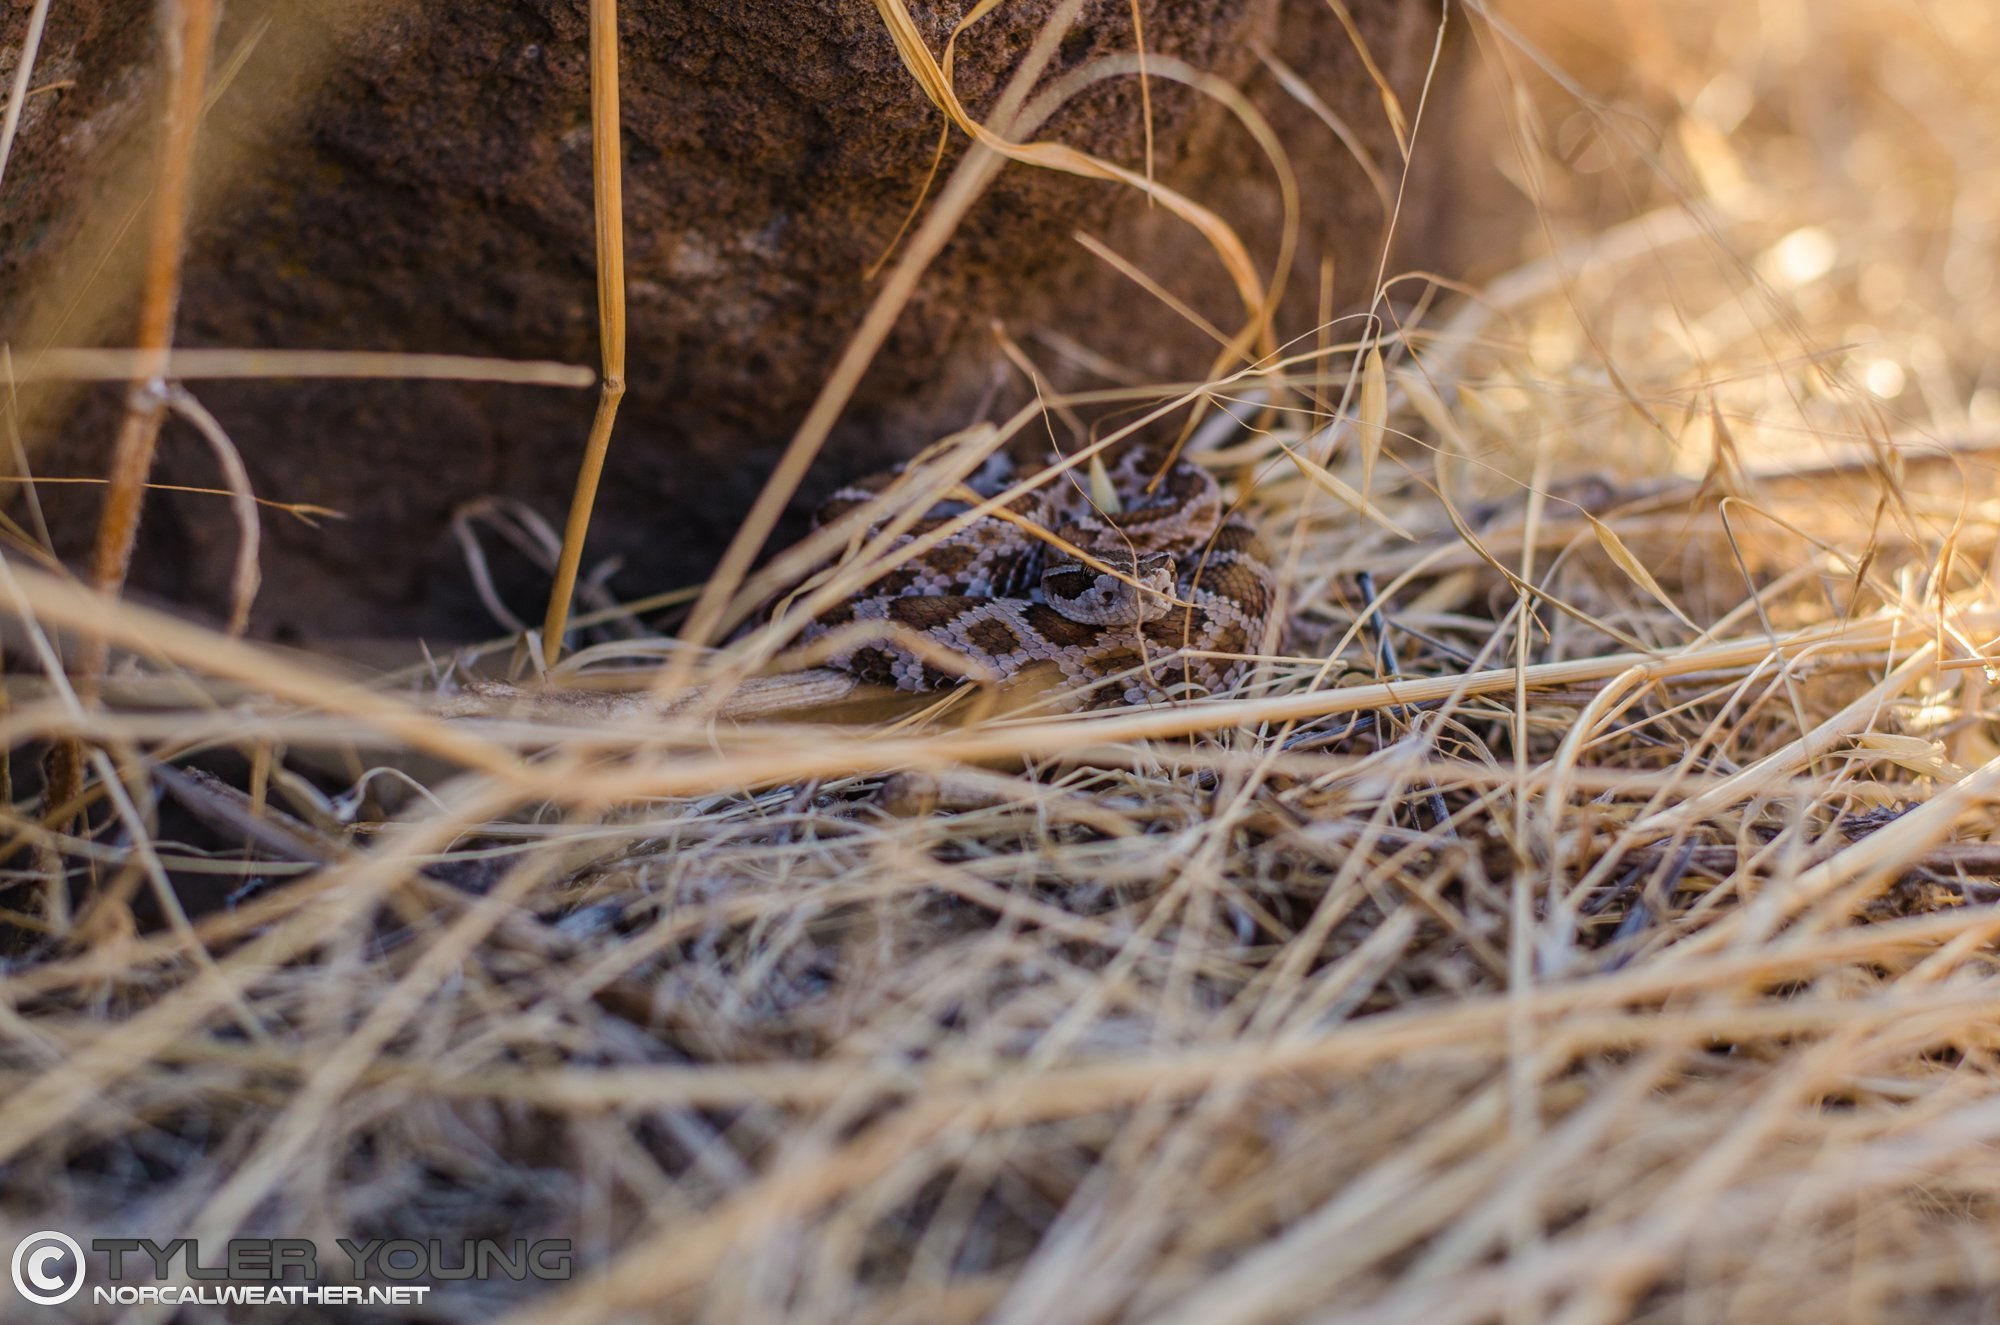 Snake Season to Remain Active Through at Least Mid-October